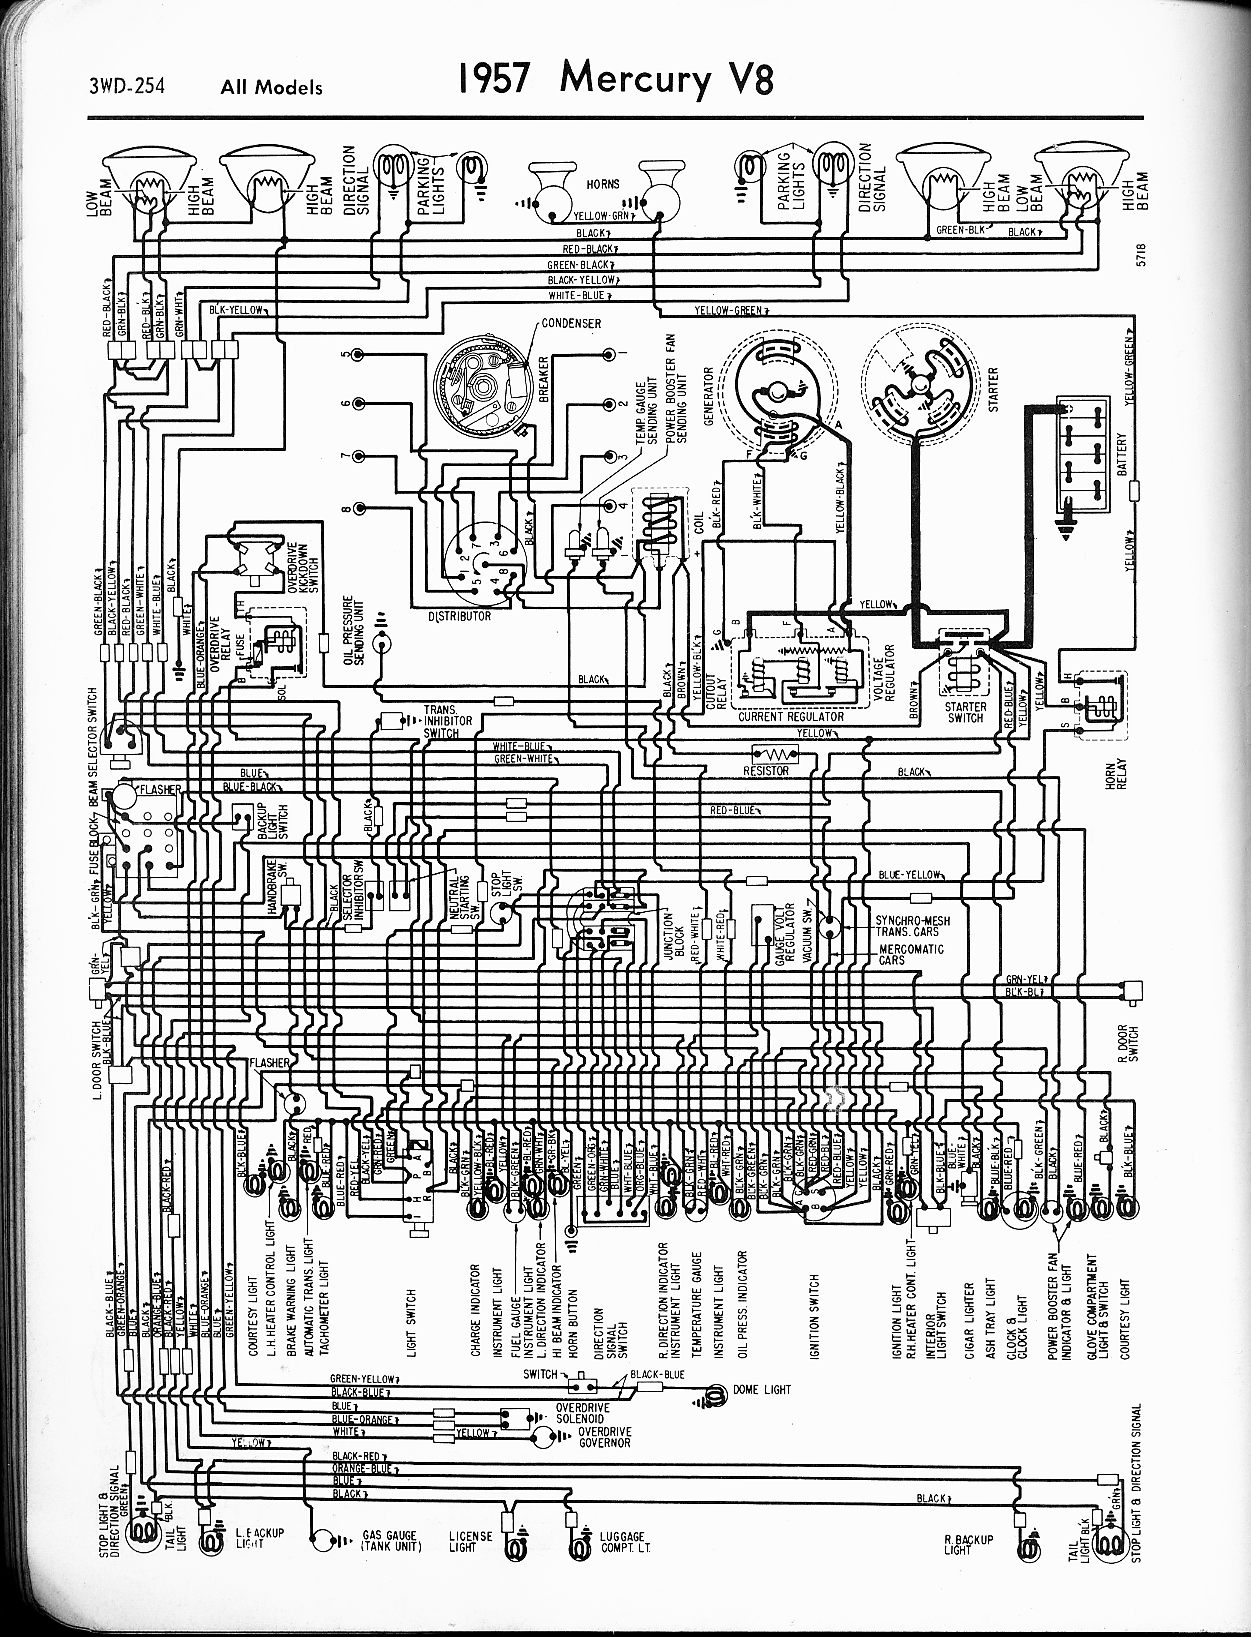 1962 mercury ignition switch wiring diagram get free image about wiring diagram